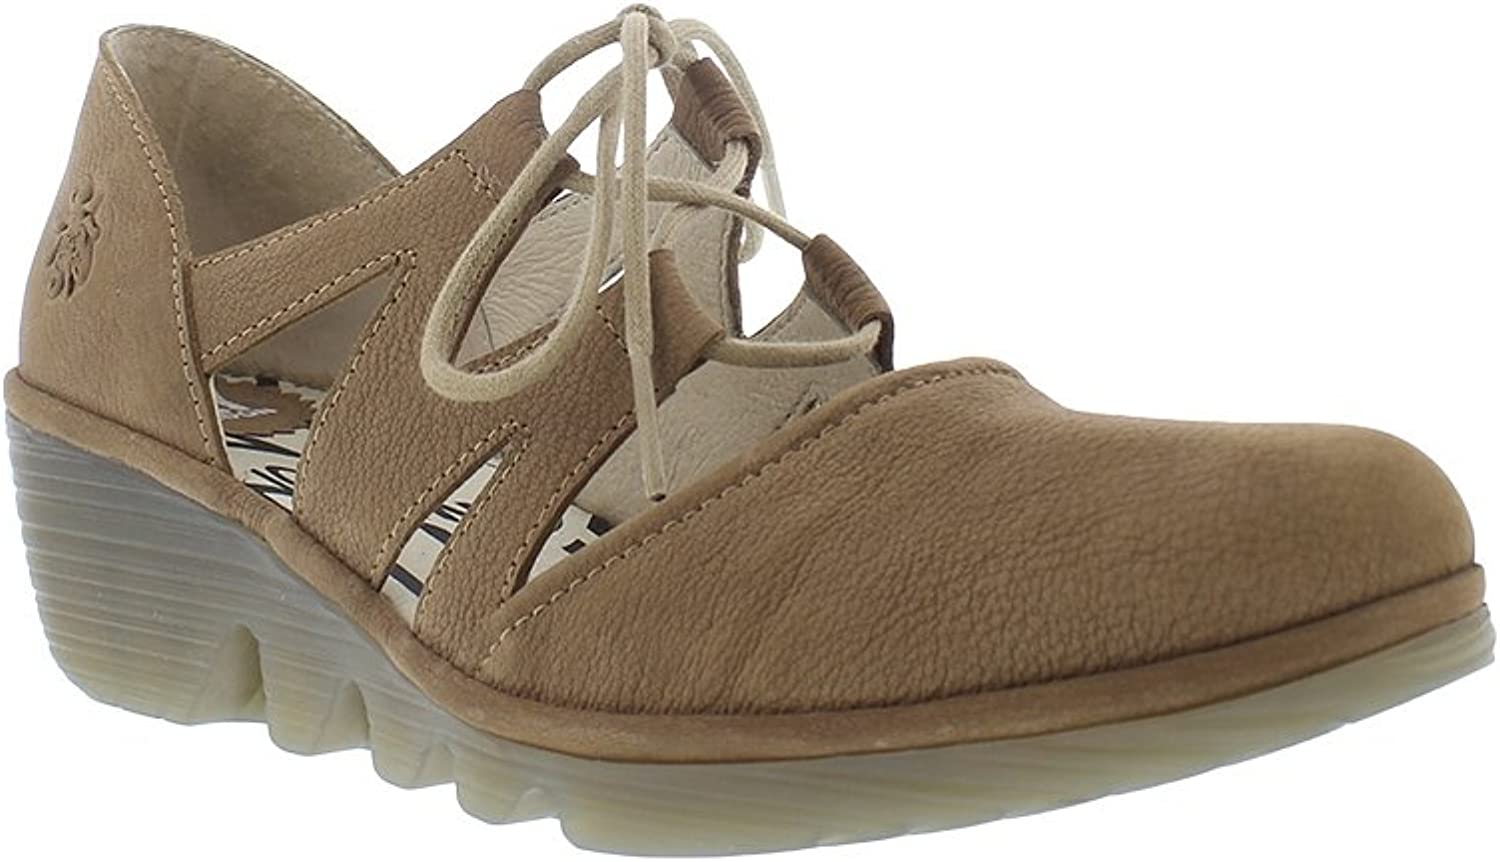 FLY London Phis Wedge schuhe